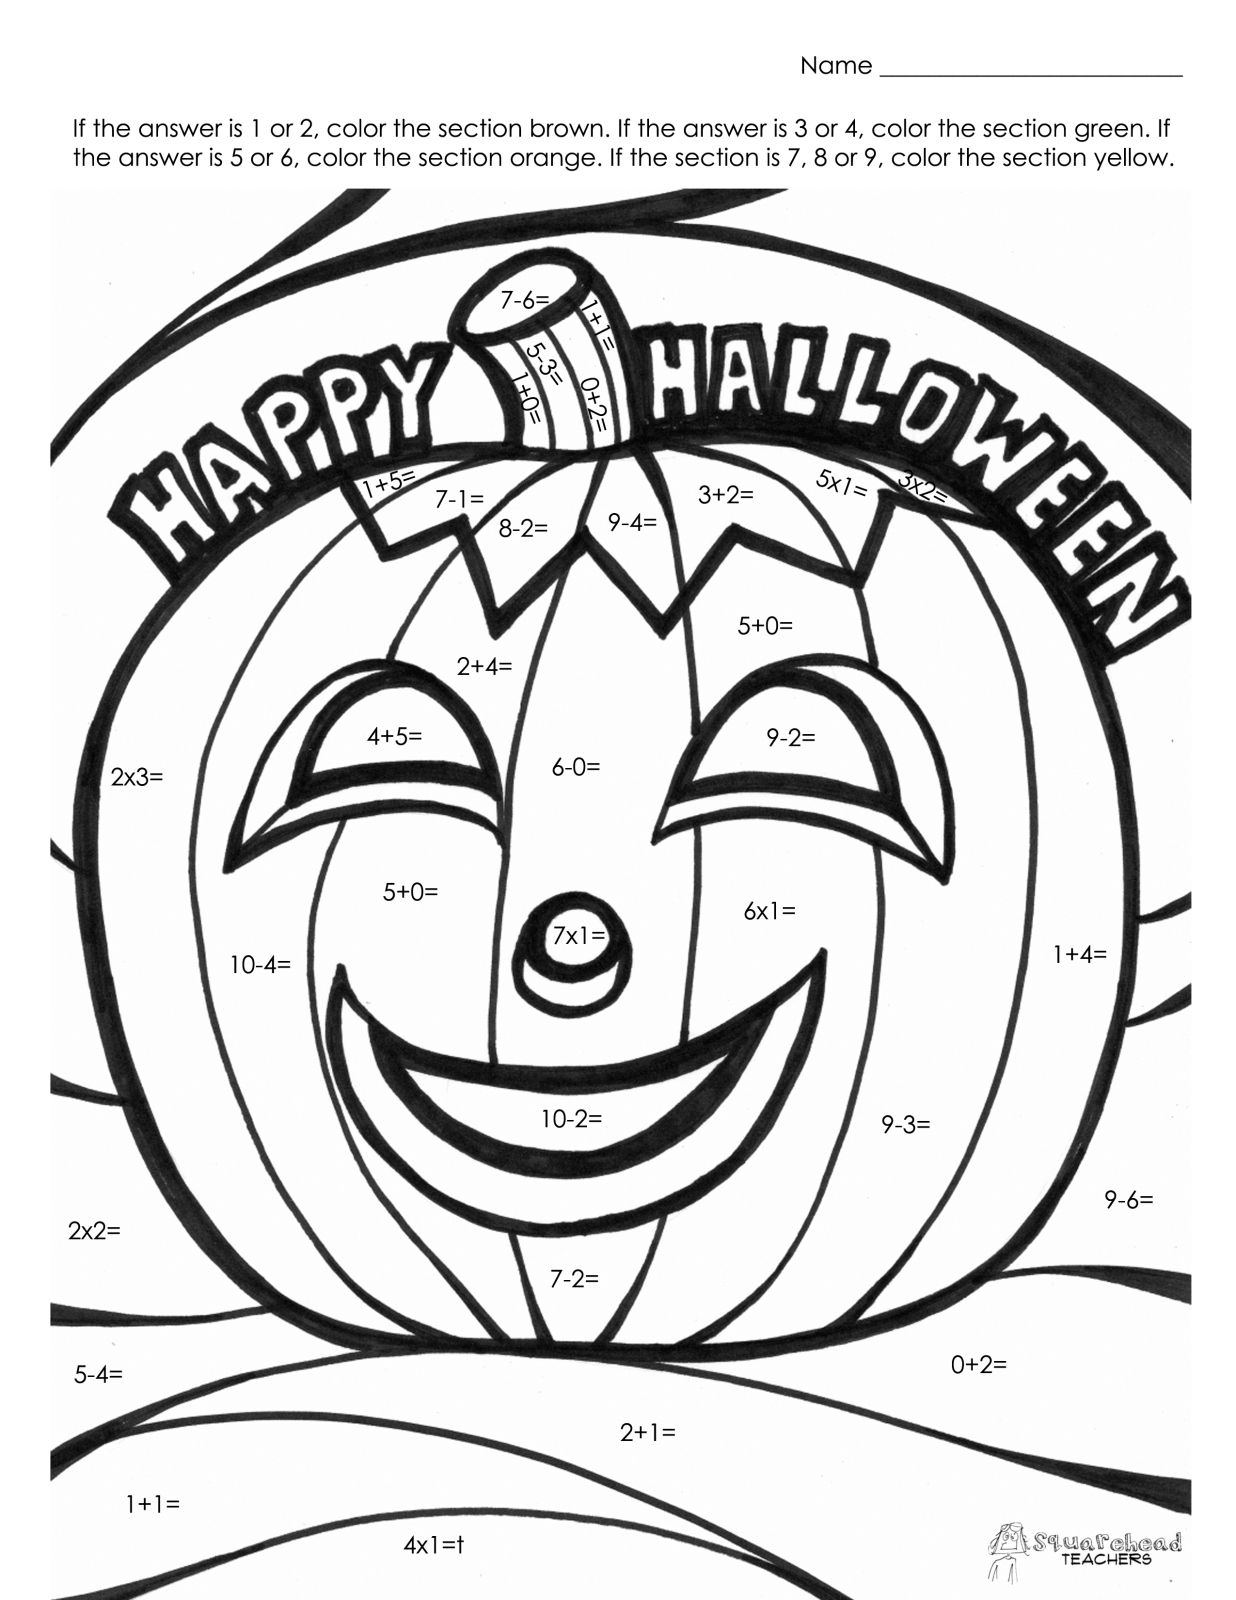 Coloring Pages : Halloween Math Fact Coloring Number regarding Printable Halloween Multiplication Worksheets